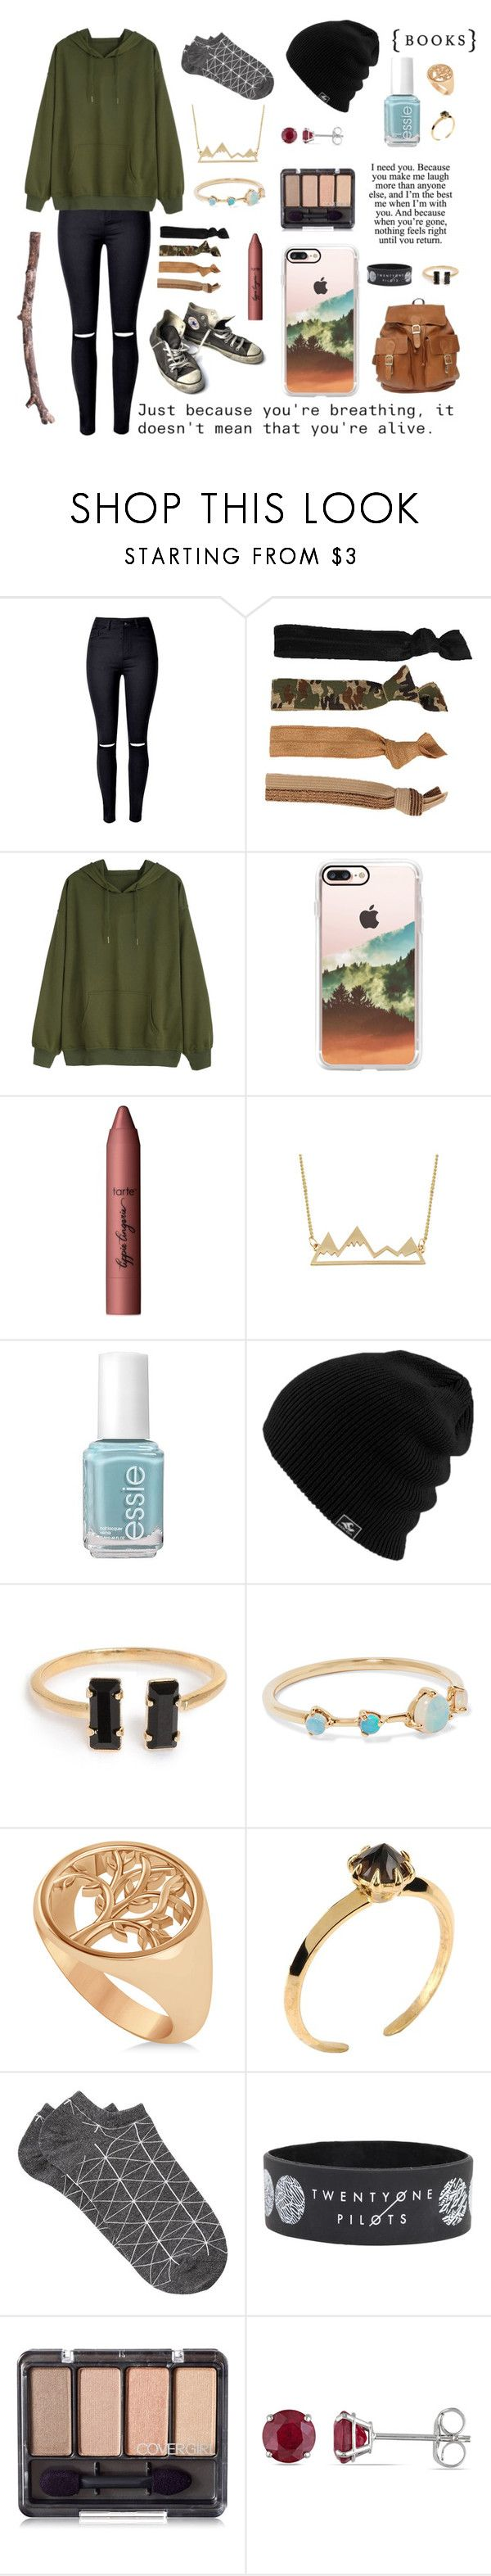 """Down in the Forest"" by lydiaschley ❤ liked on Polyvore featuring WithChic, Glam Bands, Casetify, tarte, Essie, WWAKE, Allurez, Converse, Katie Rowland and Witchery"